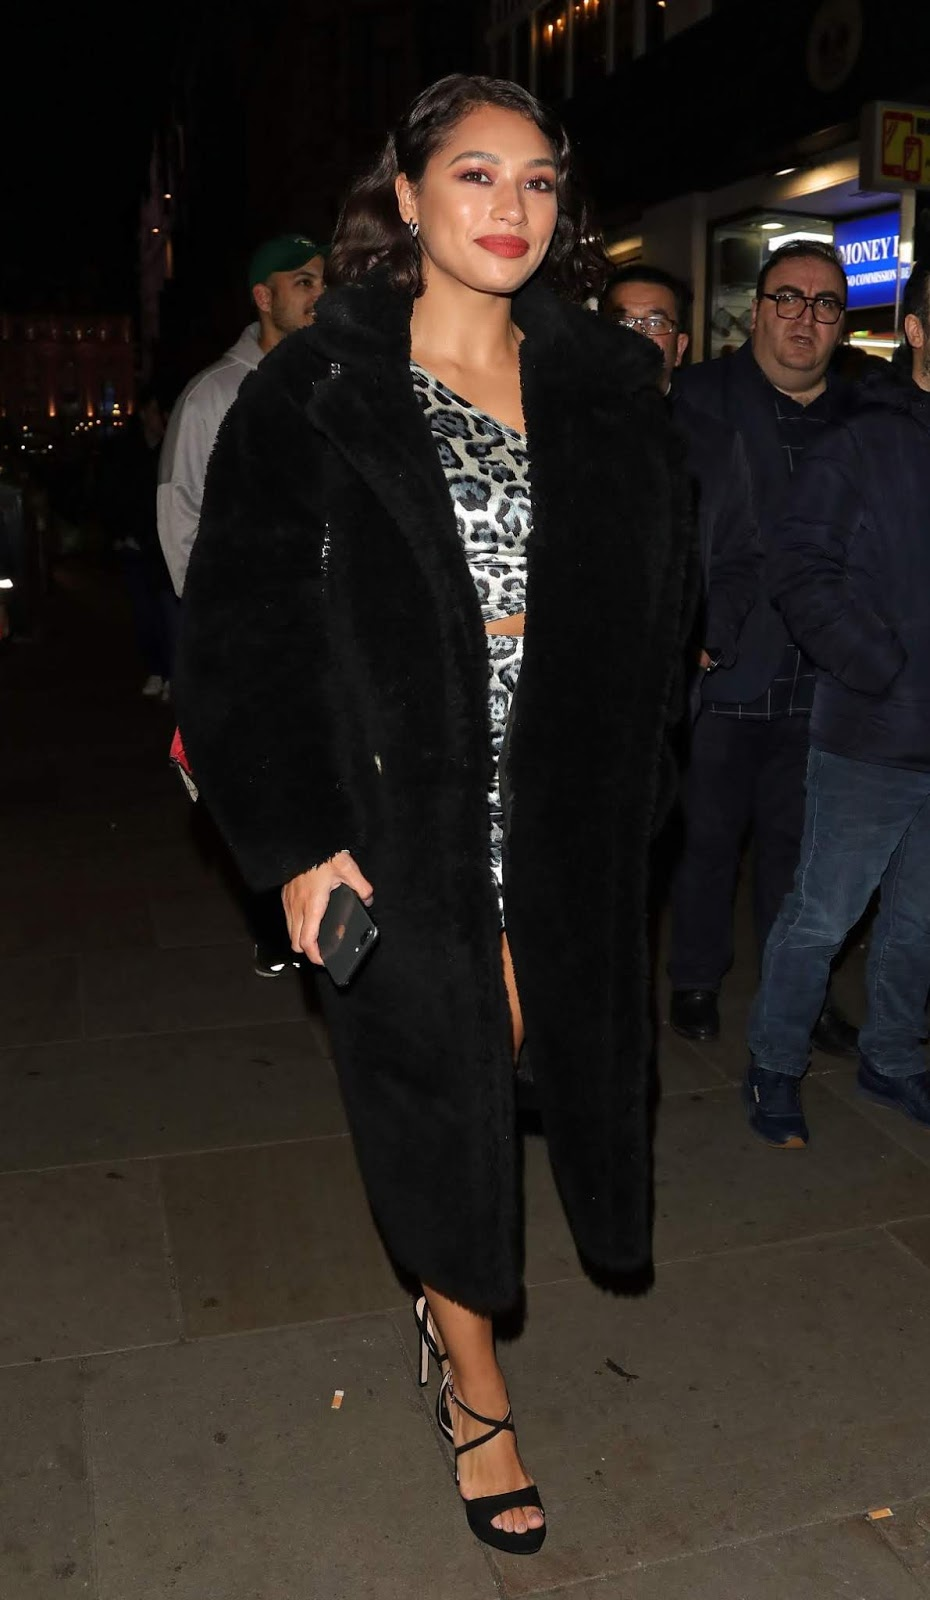 Vanessa White Celebrates Her Sisters Birthday in London - 02/22/2019